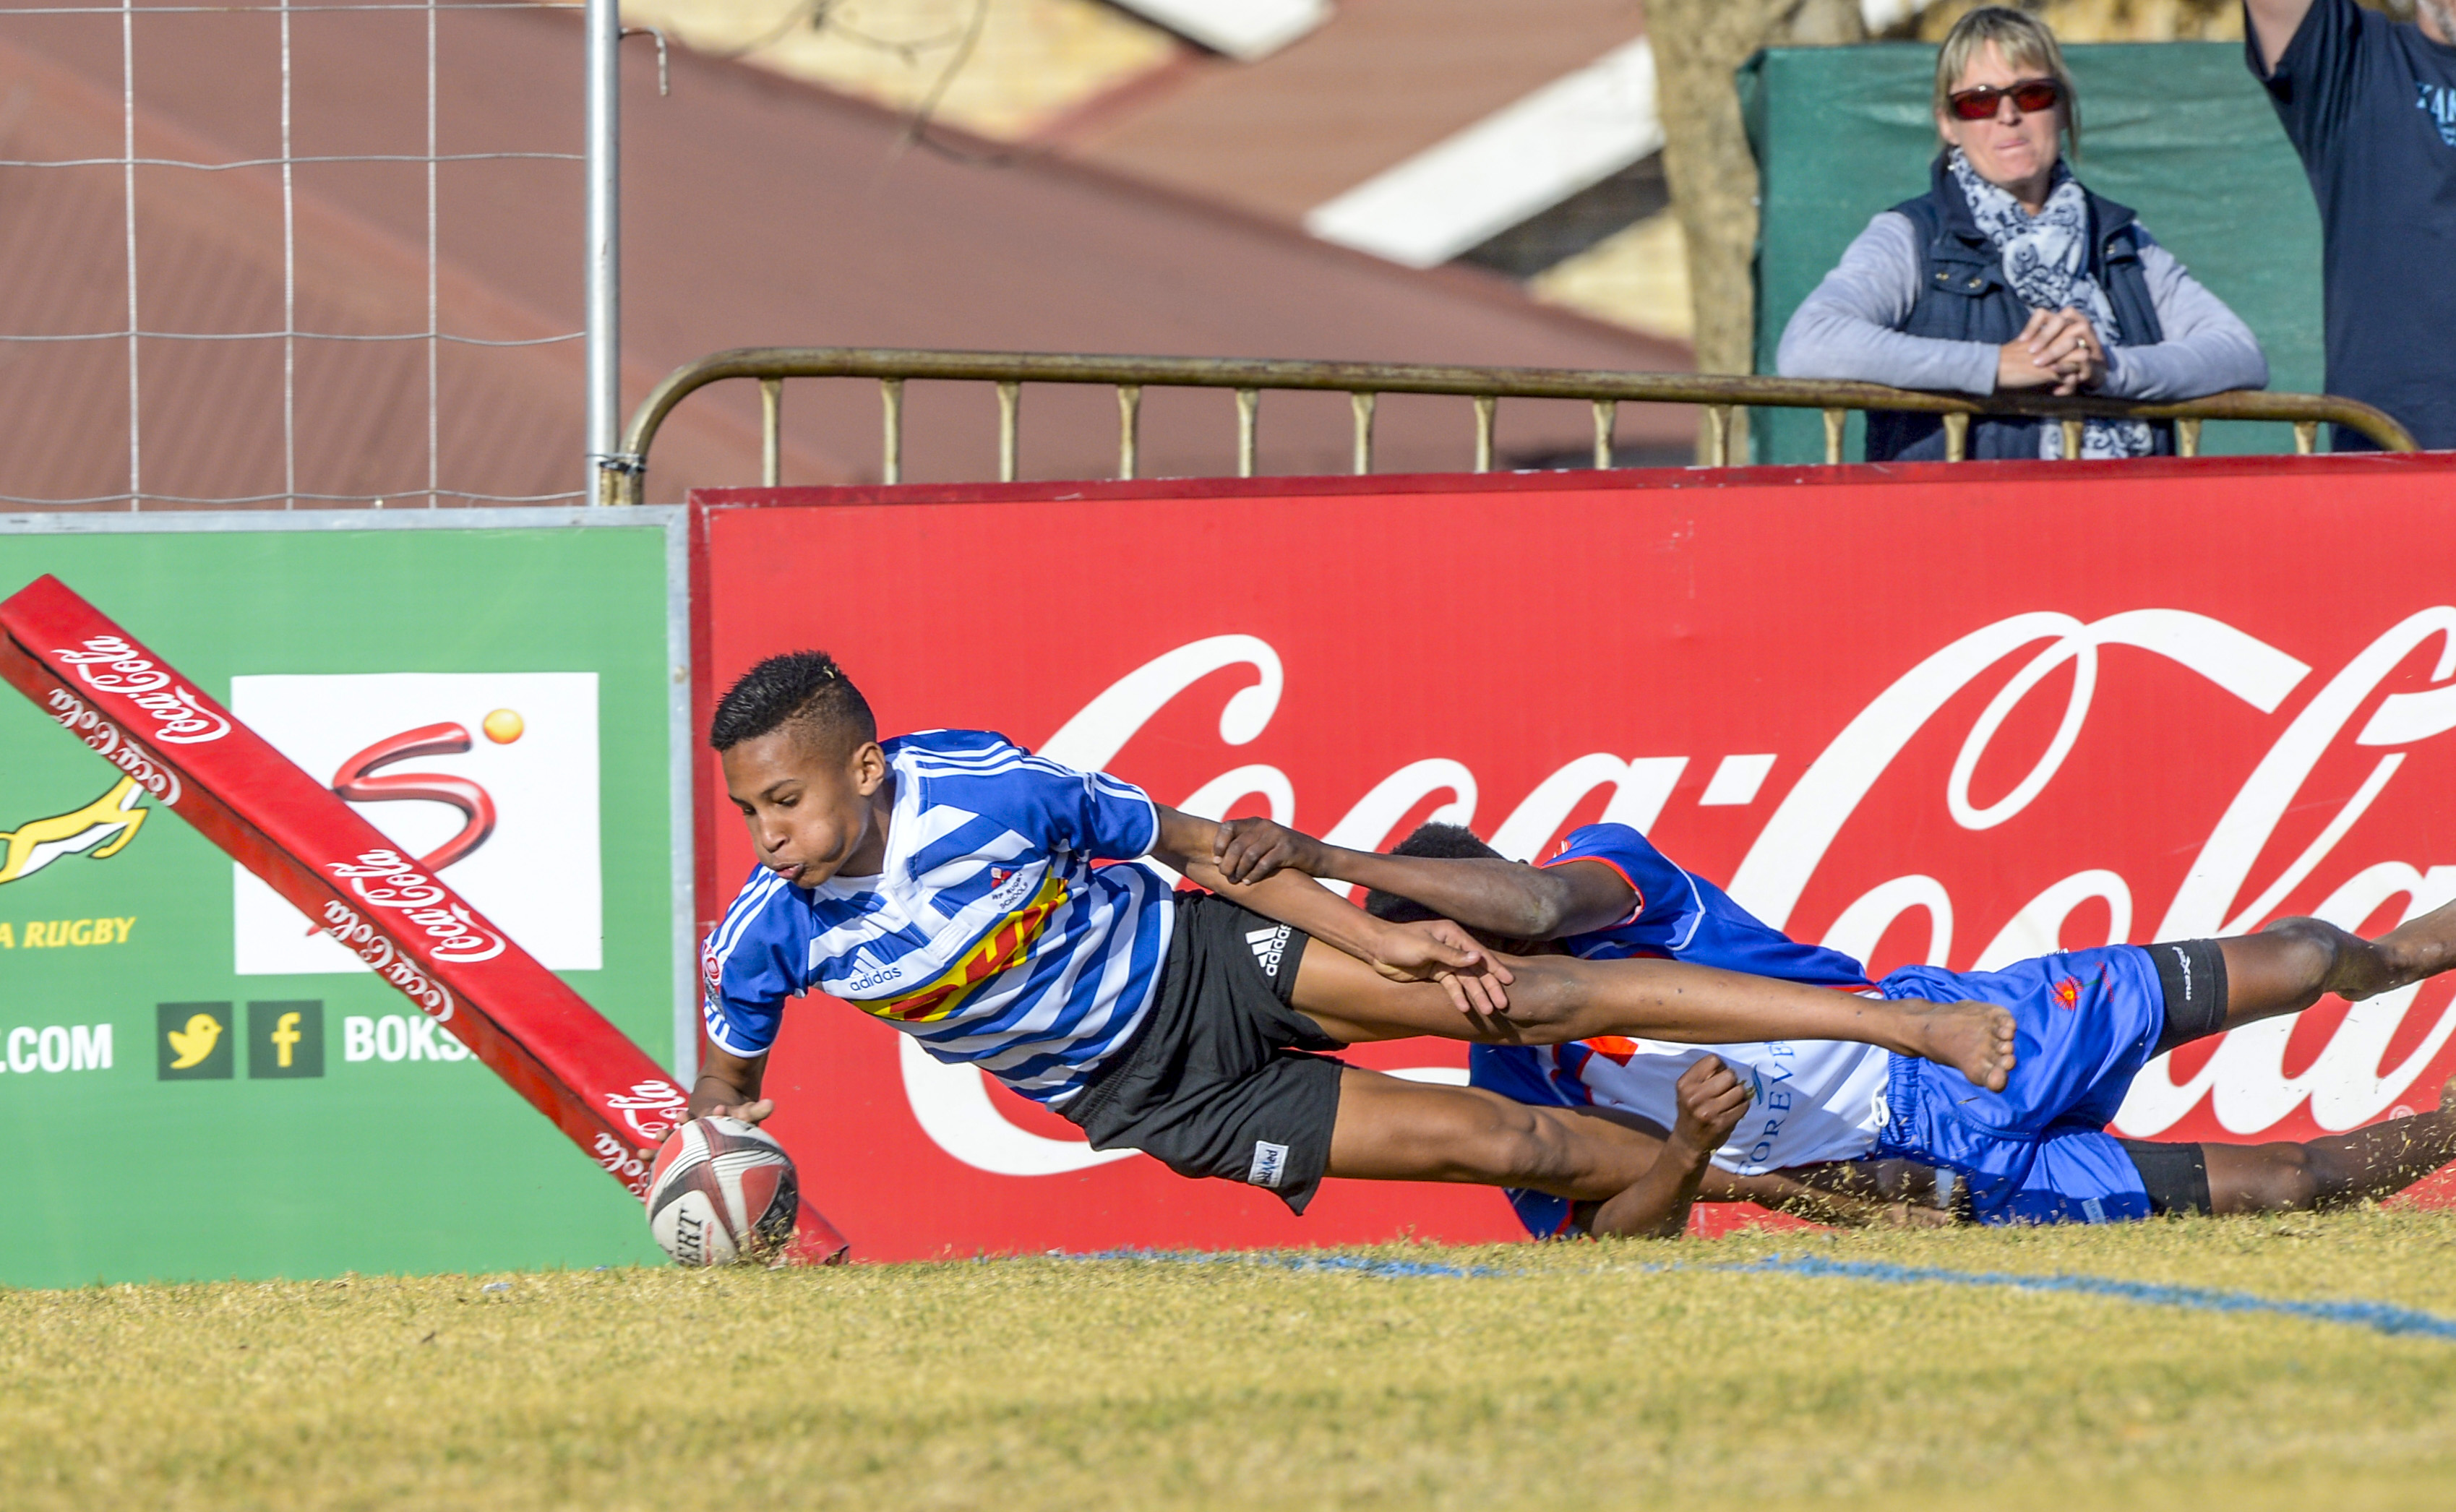 BLOEMFONTEIN, SOUTH AFRICA - JULY 11: Shah-Jehaan De Jongh of the Western Province scores a try against Limpopo Blue Bulls during day 2 of the 2017 U/13 Coca-Cola Craven Week at Grey College on July 11, 2017 in Bloemfontein, South Africa. (Photo by Sydney Seshibedi/Gallo Images)